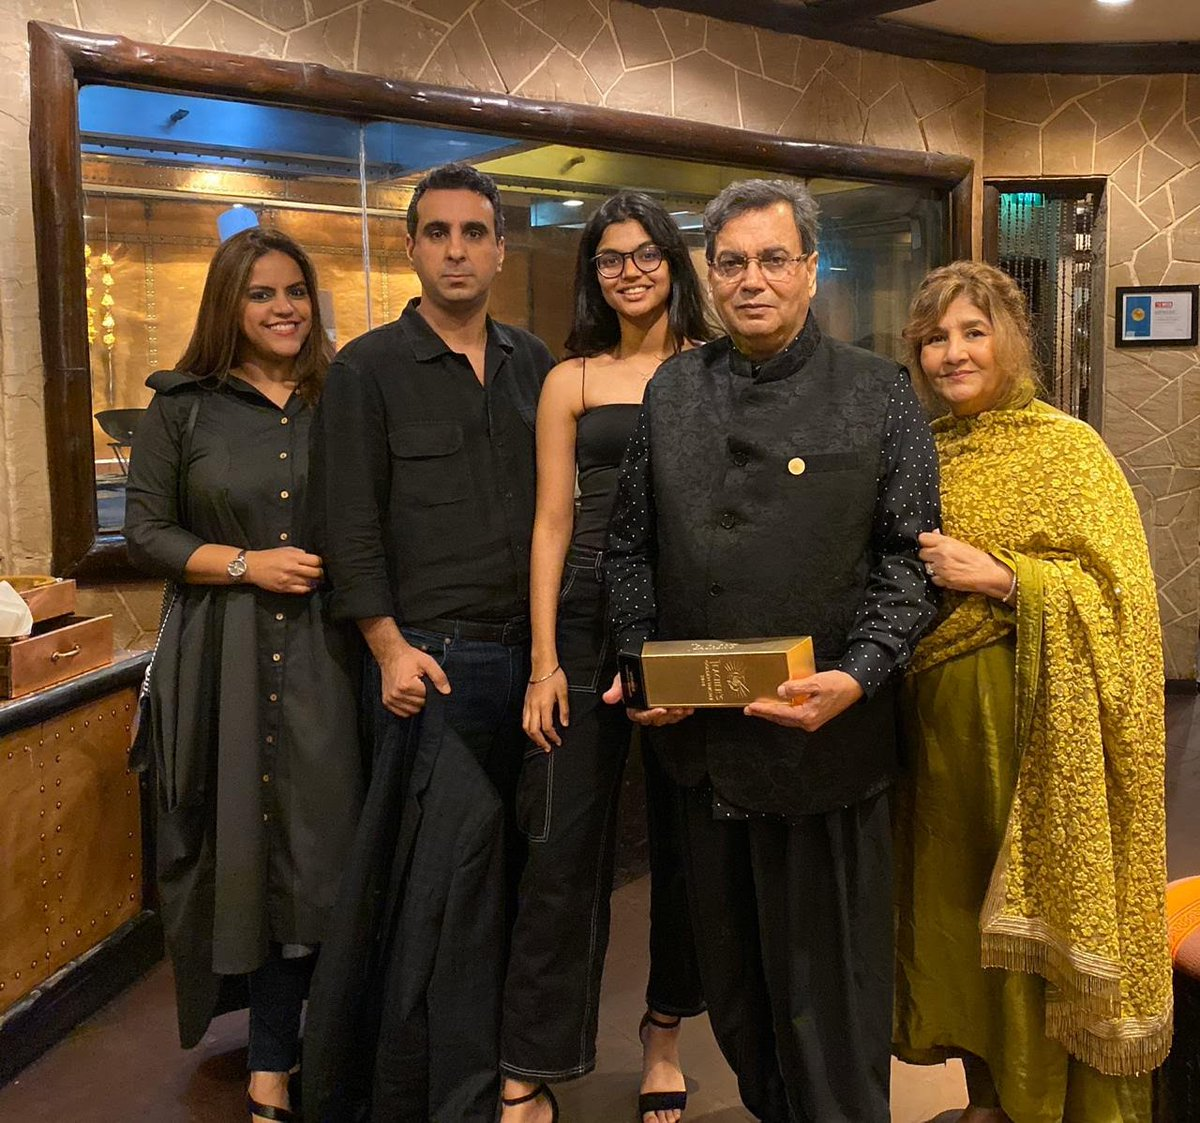 Congratulations to Mr. @SubhashGhai1, for being awarded with Forever Genuine (Lifetime Achievement) Award at the Teachers Golden Thistle Awards 2019. The award was presented to Mr. Ghai for exhibiting outstanding, creative, innovative, and visionary leadership. #DoWhatYouLove